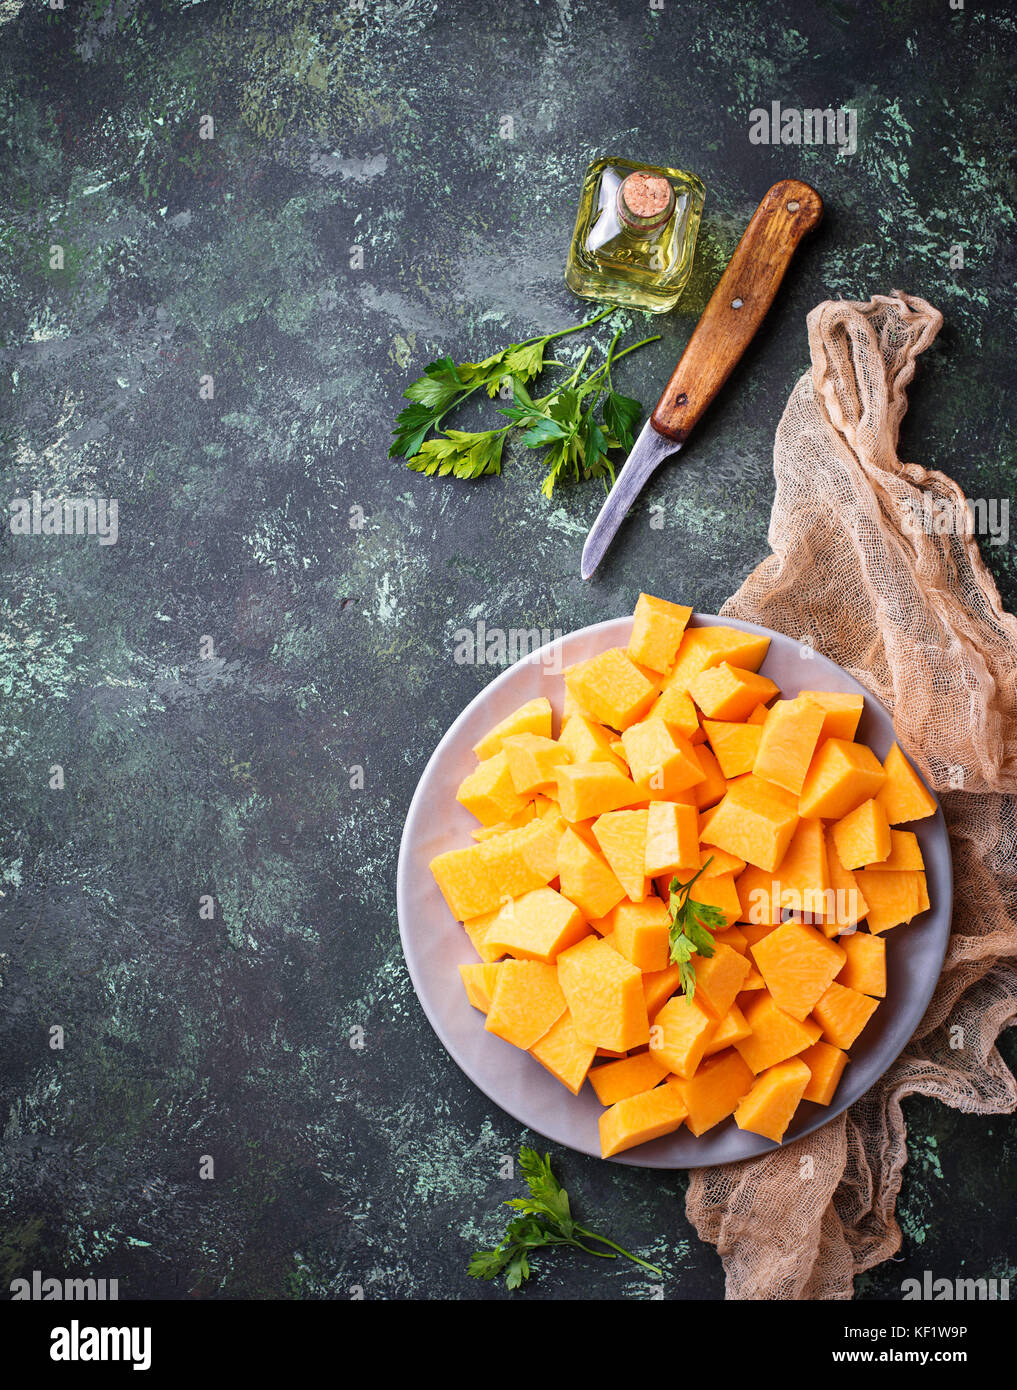 Raw chopped pumpkin on concrete background - Stock Image